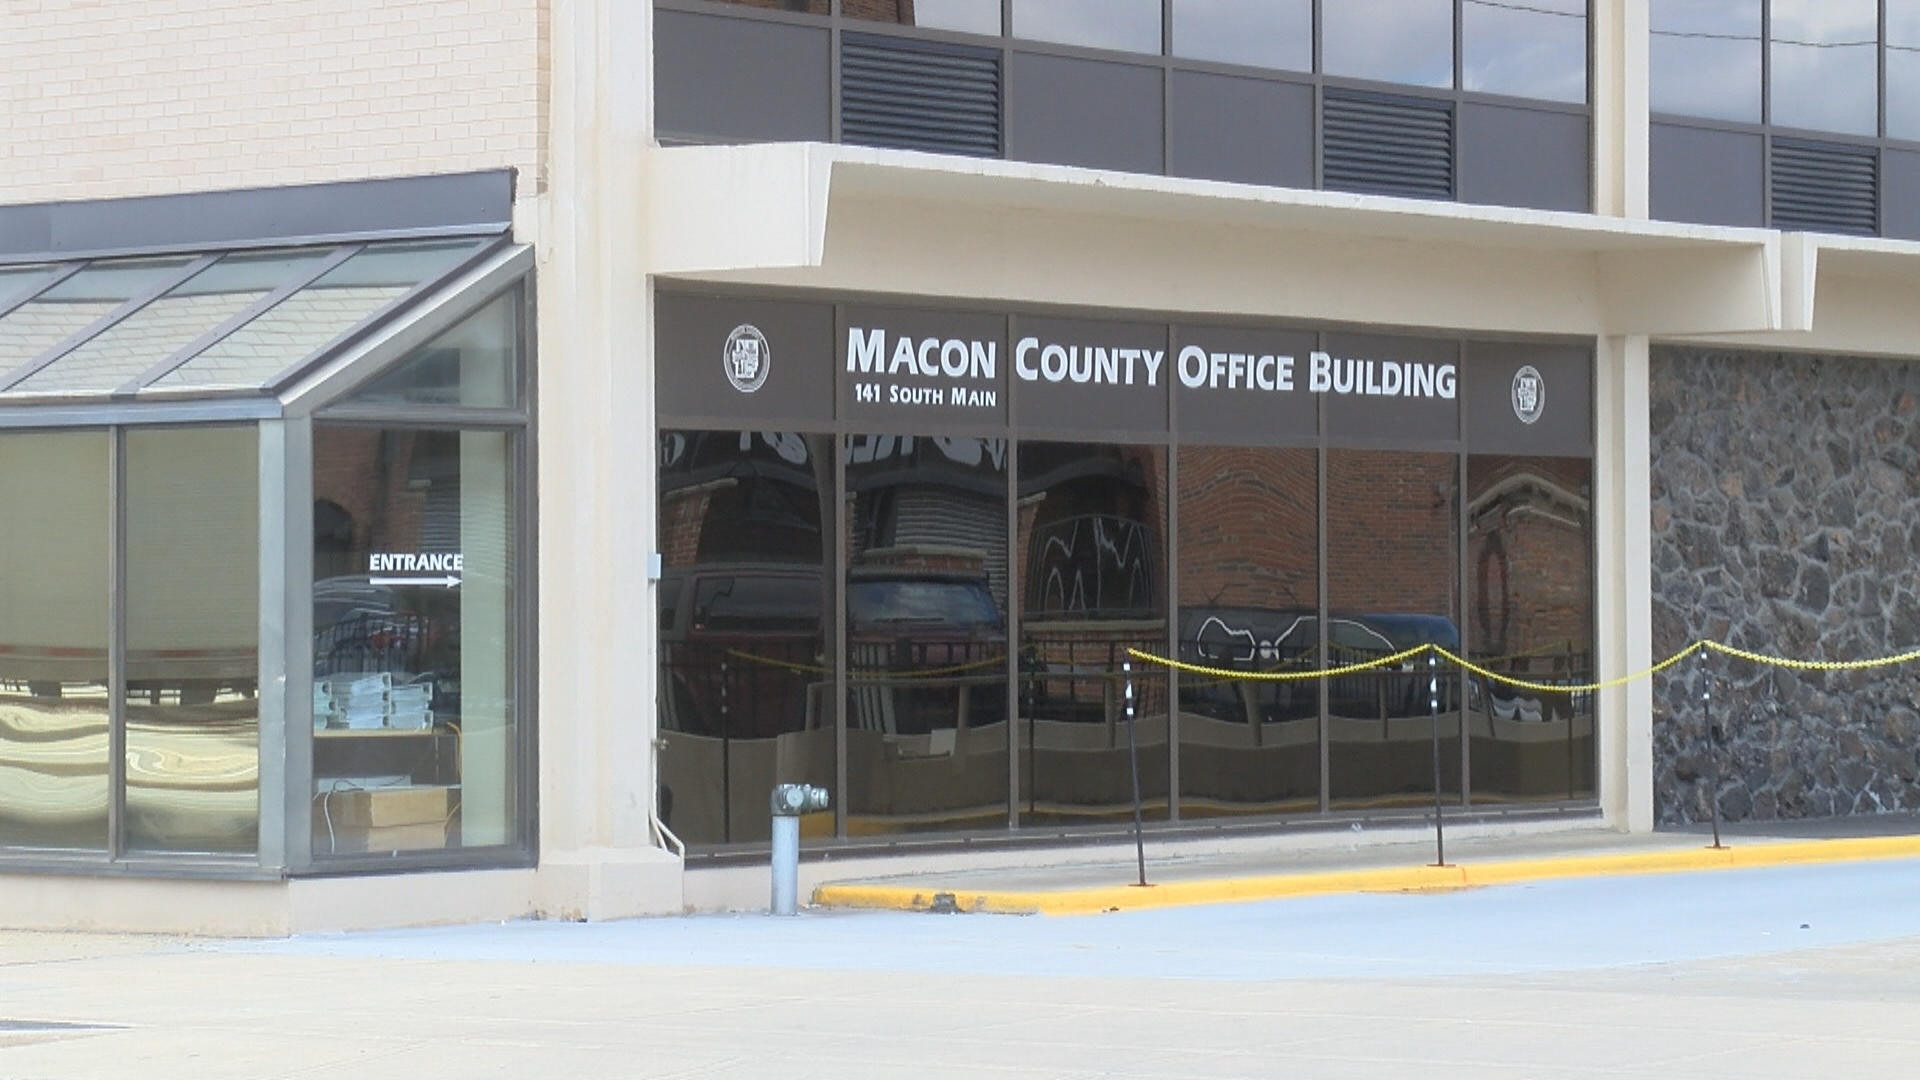 macon county office building_1550602847882.jpg.jpg